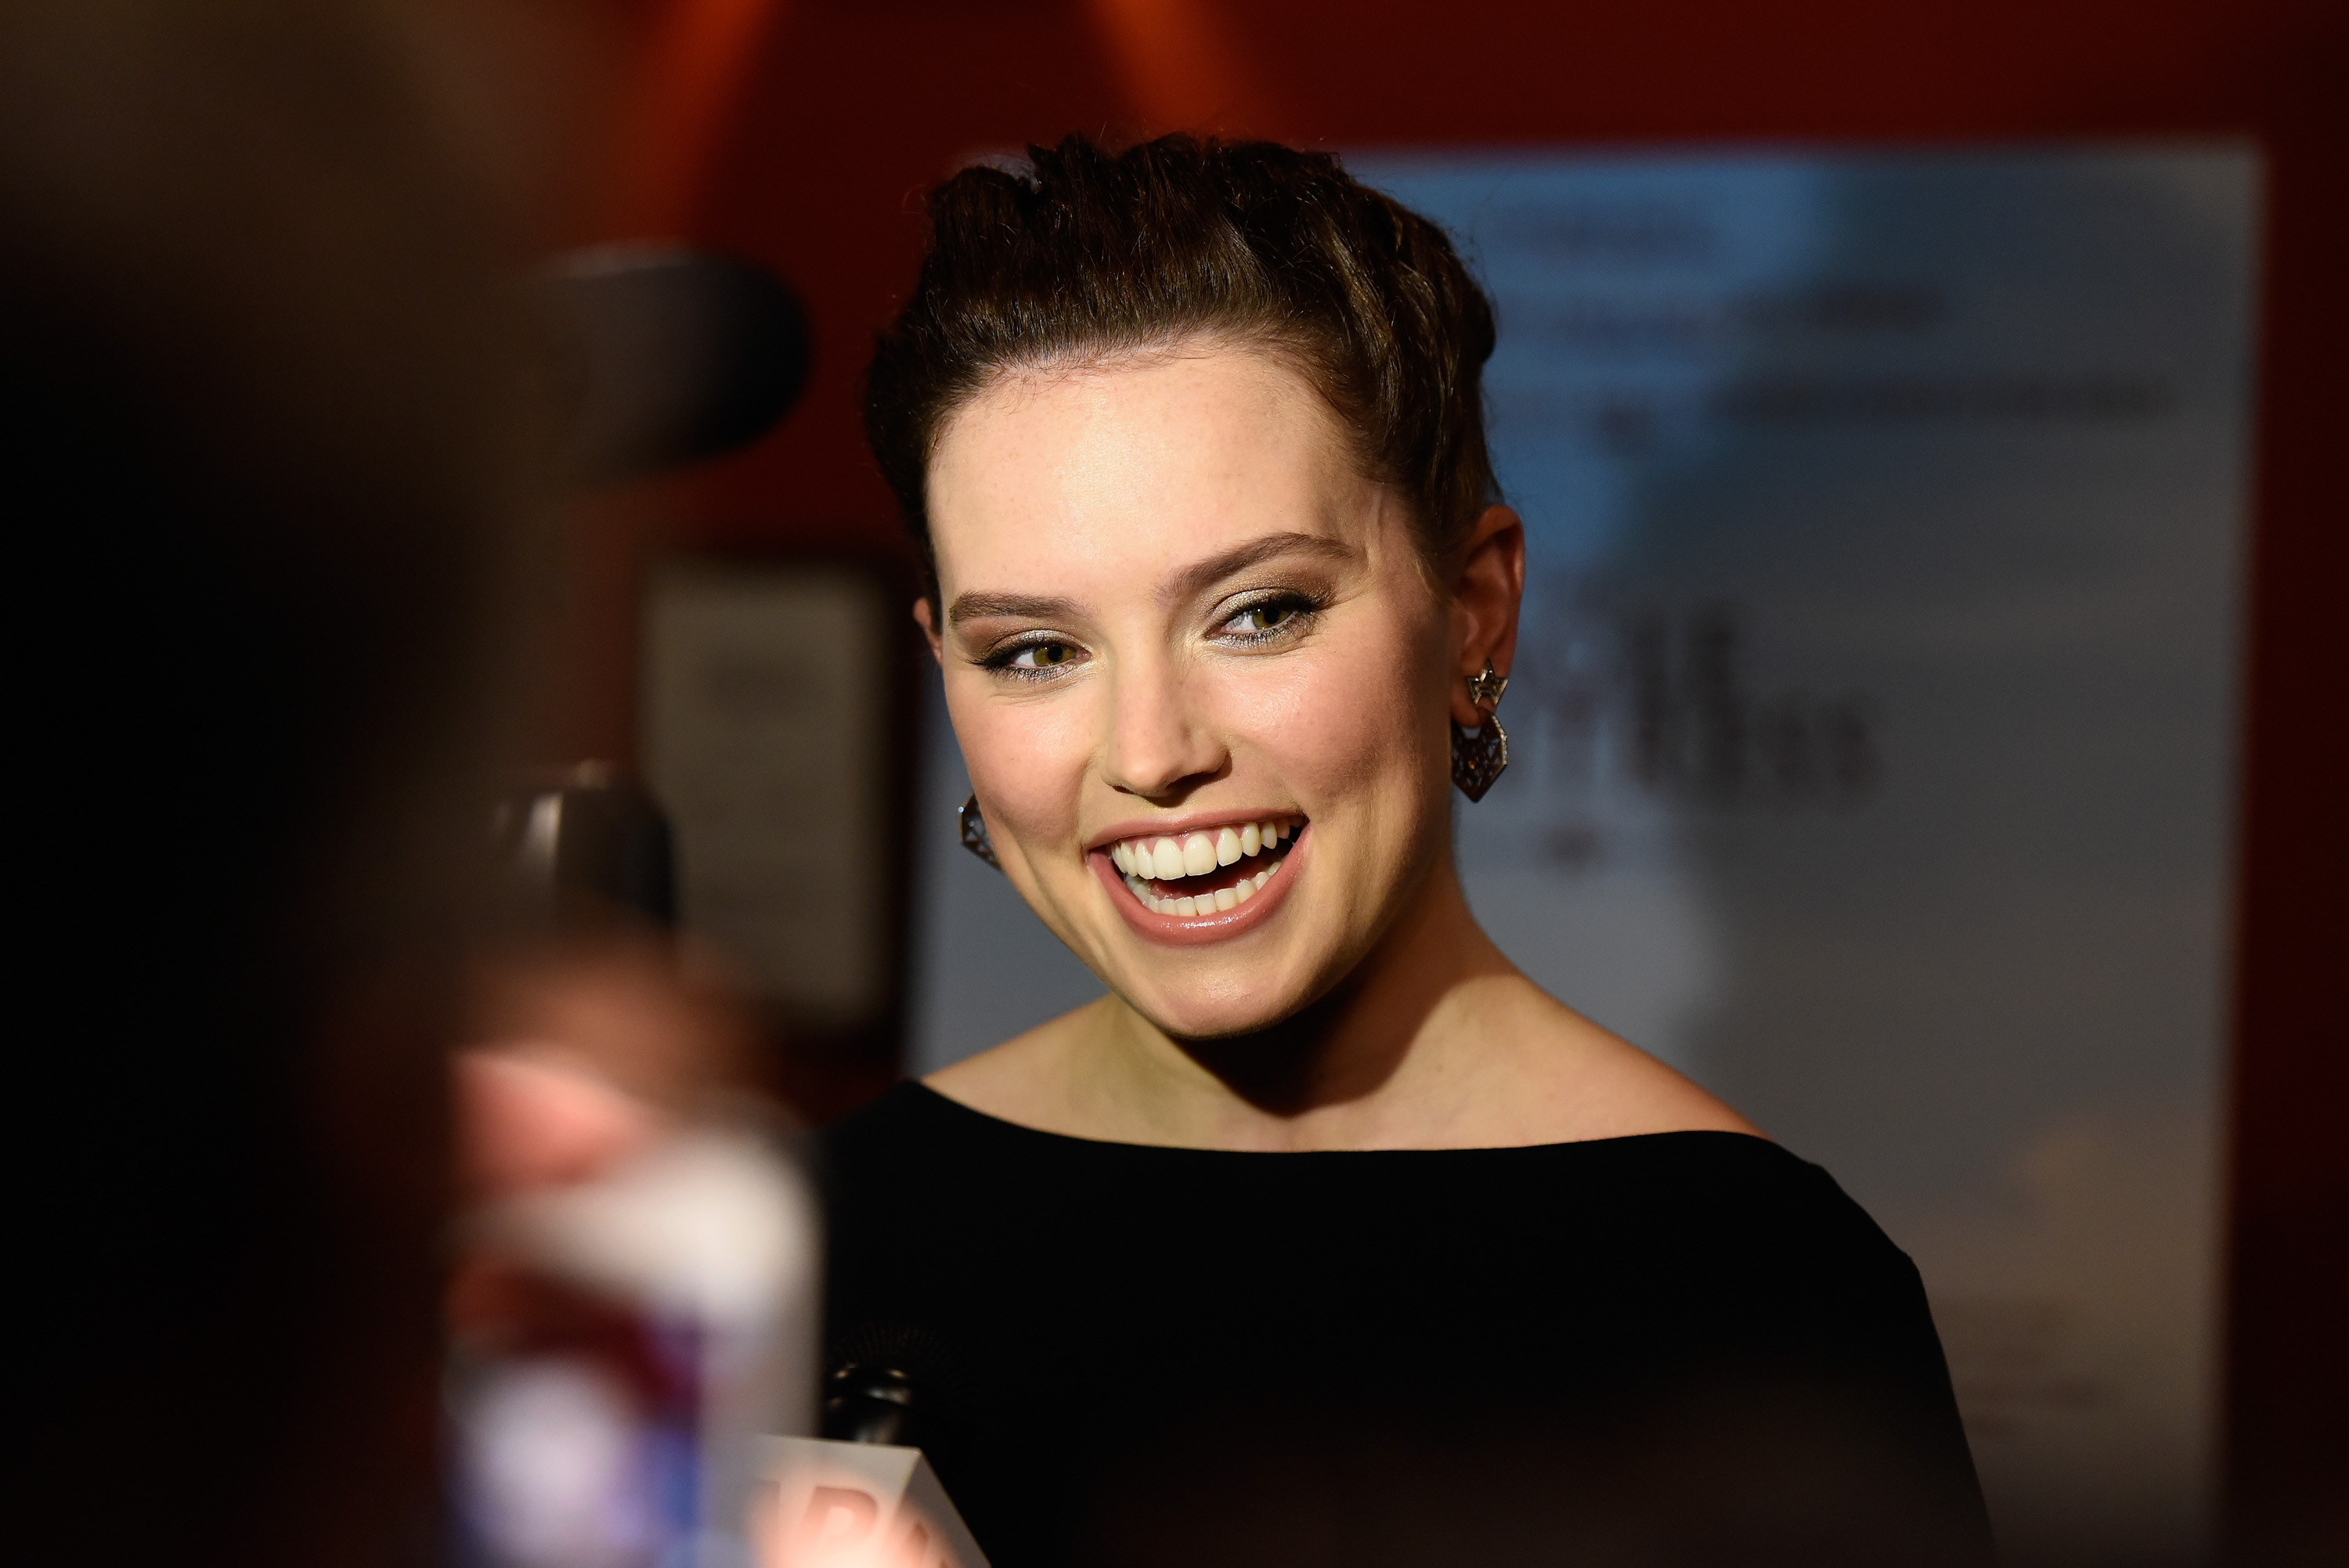 NEW YORK, NY - OCTOBER 20:  Executive Producer Daisy Ridley attends  The Eagle Huntress  screening at Landmark Sunshine Cinema on October 20, 2016 in New York City.  (Photo by Matthew Eisman/Getty Images)